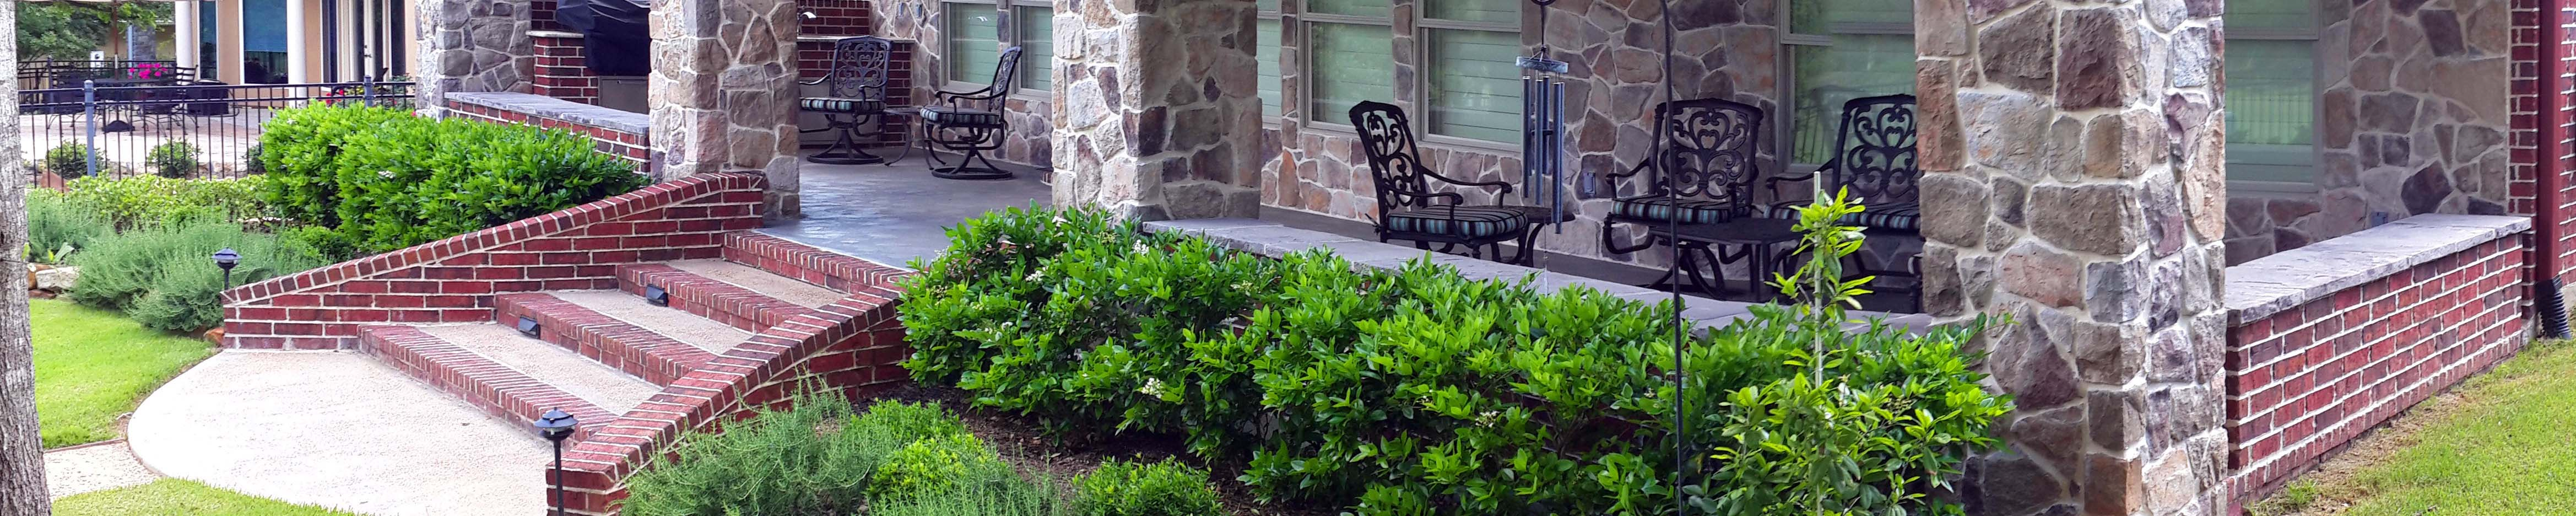 landscaping-services-in-round-rock-and-college-station-texas